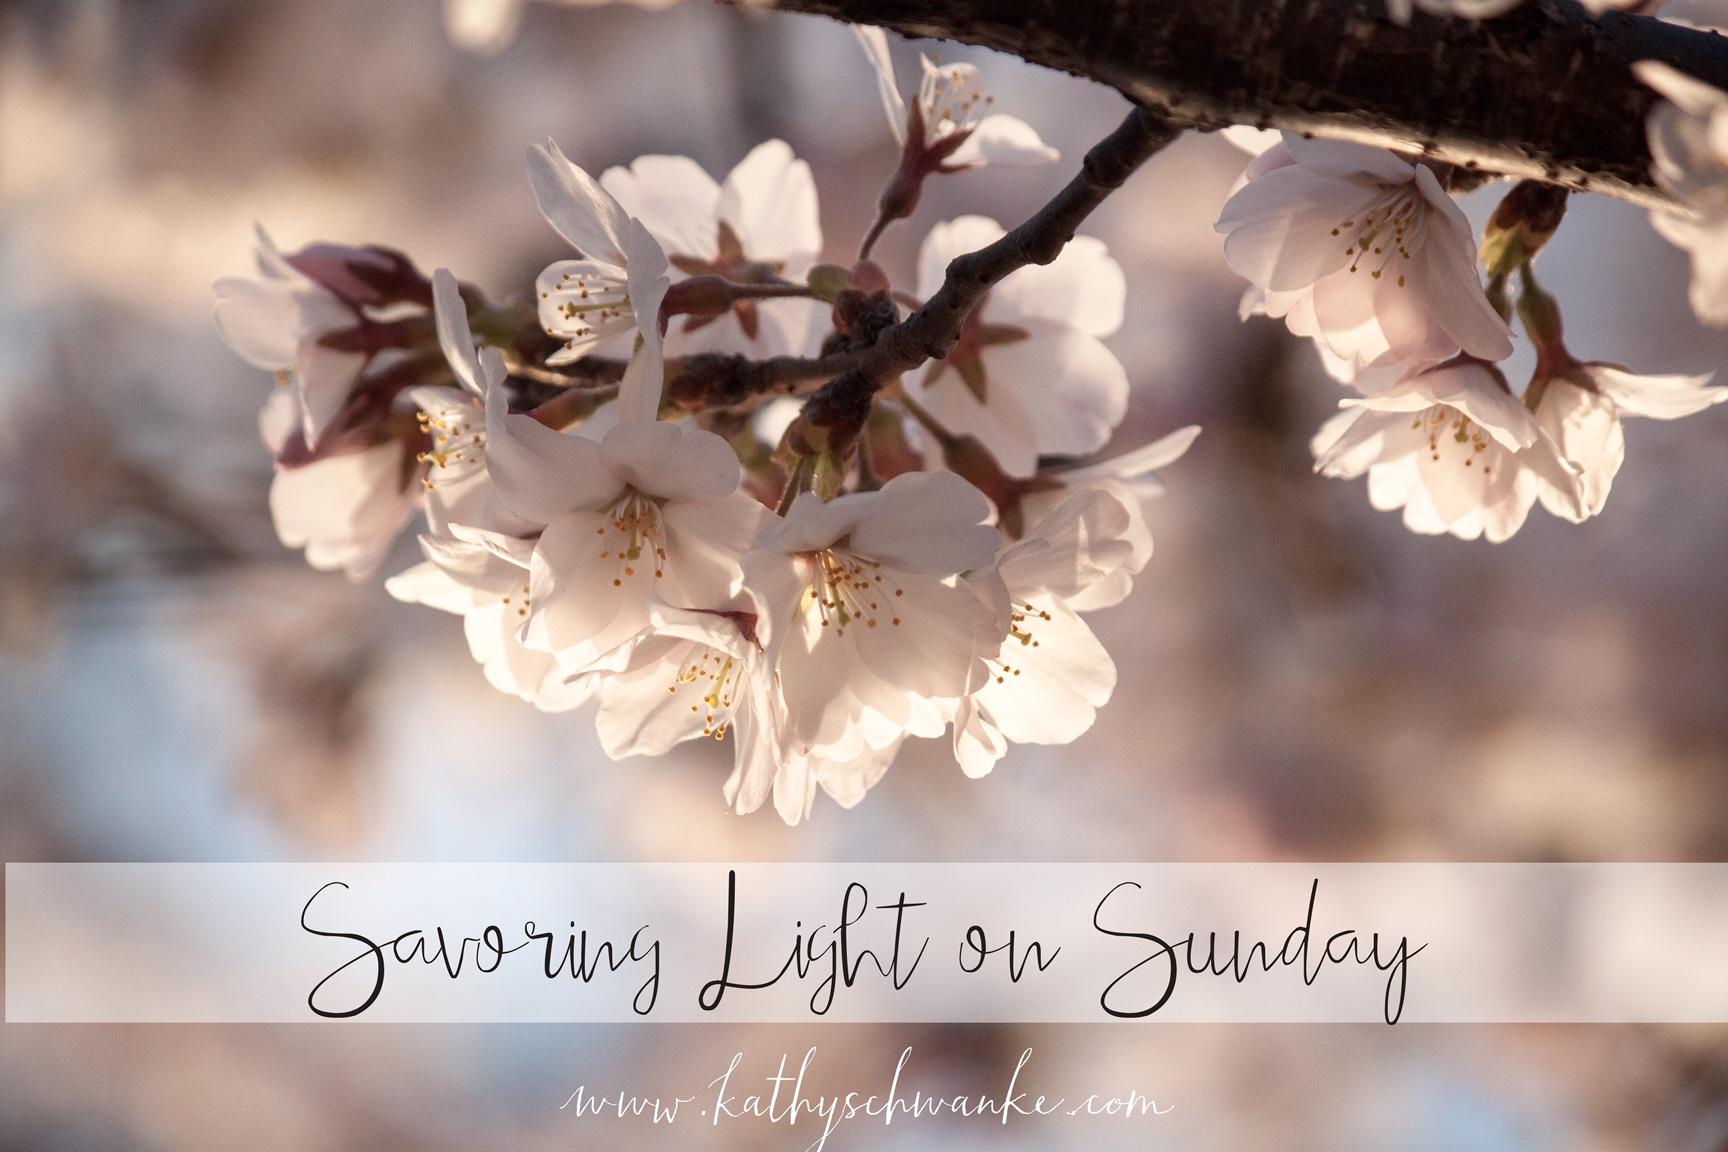 Savoring Light on Sunday